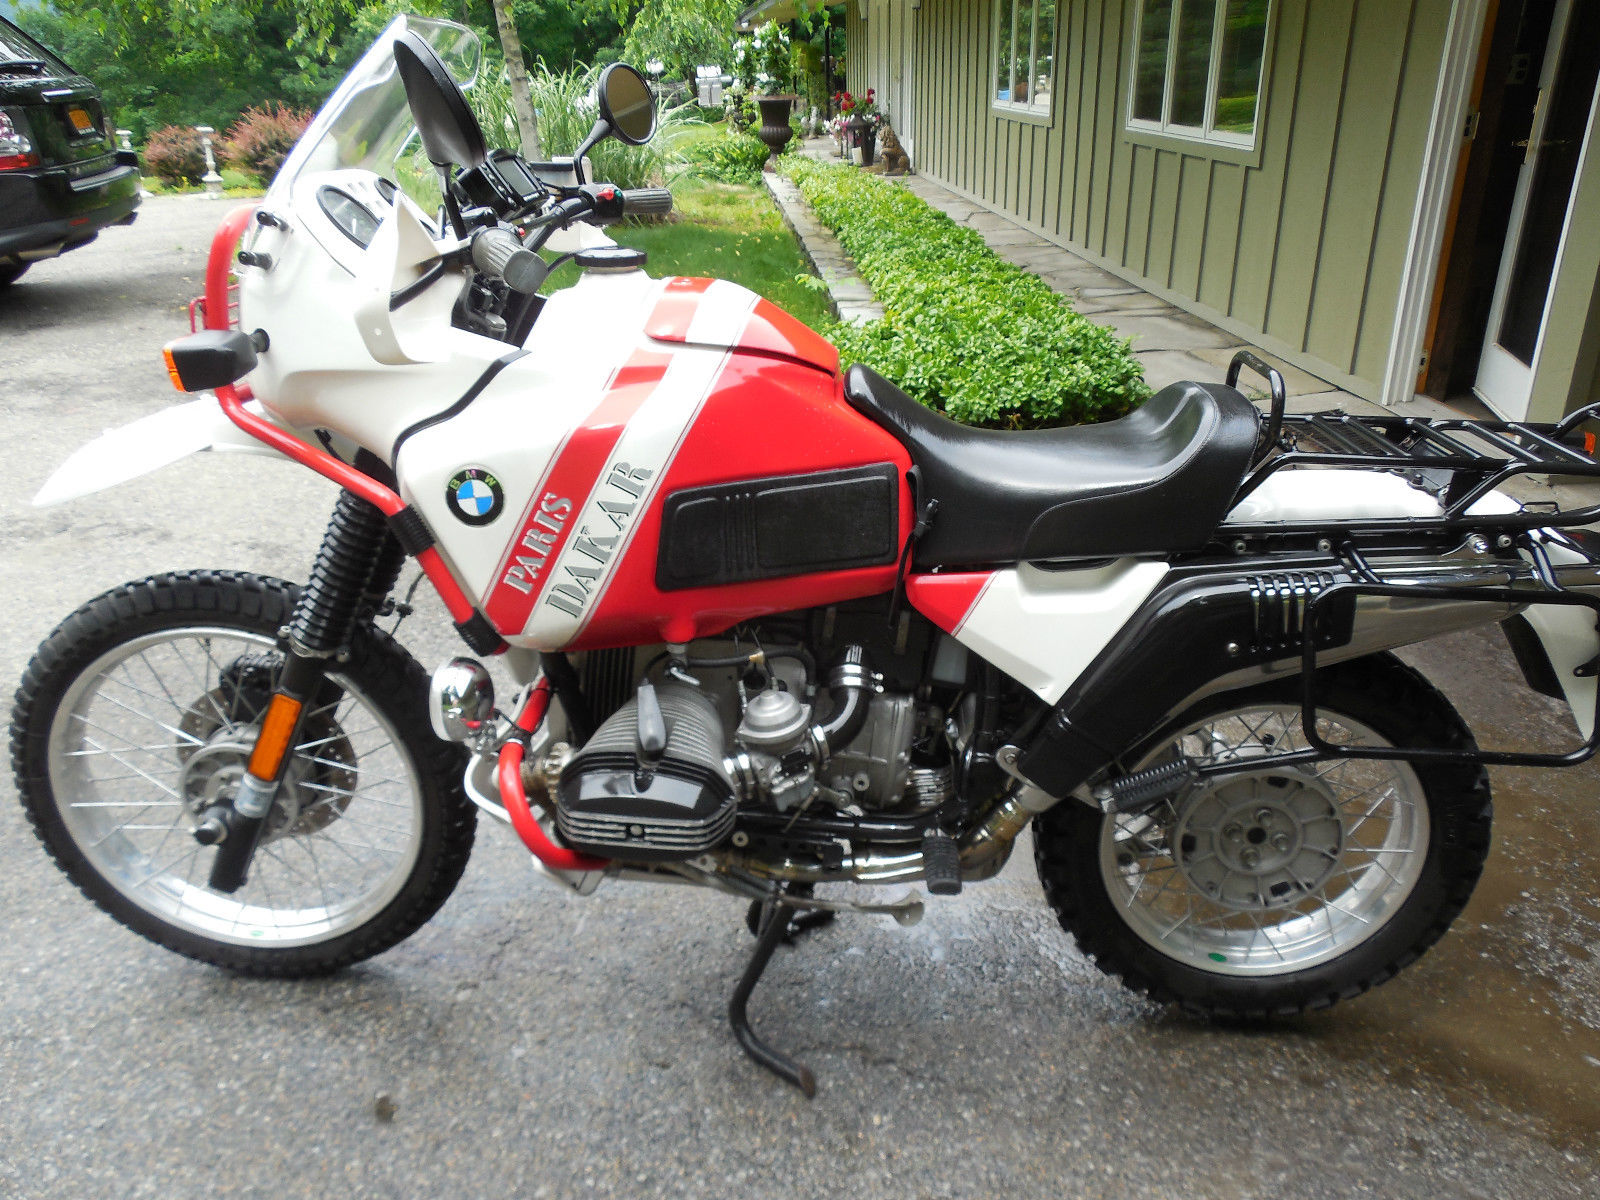 BMW R100GS Paris-Dakar 1995 #7